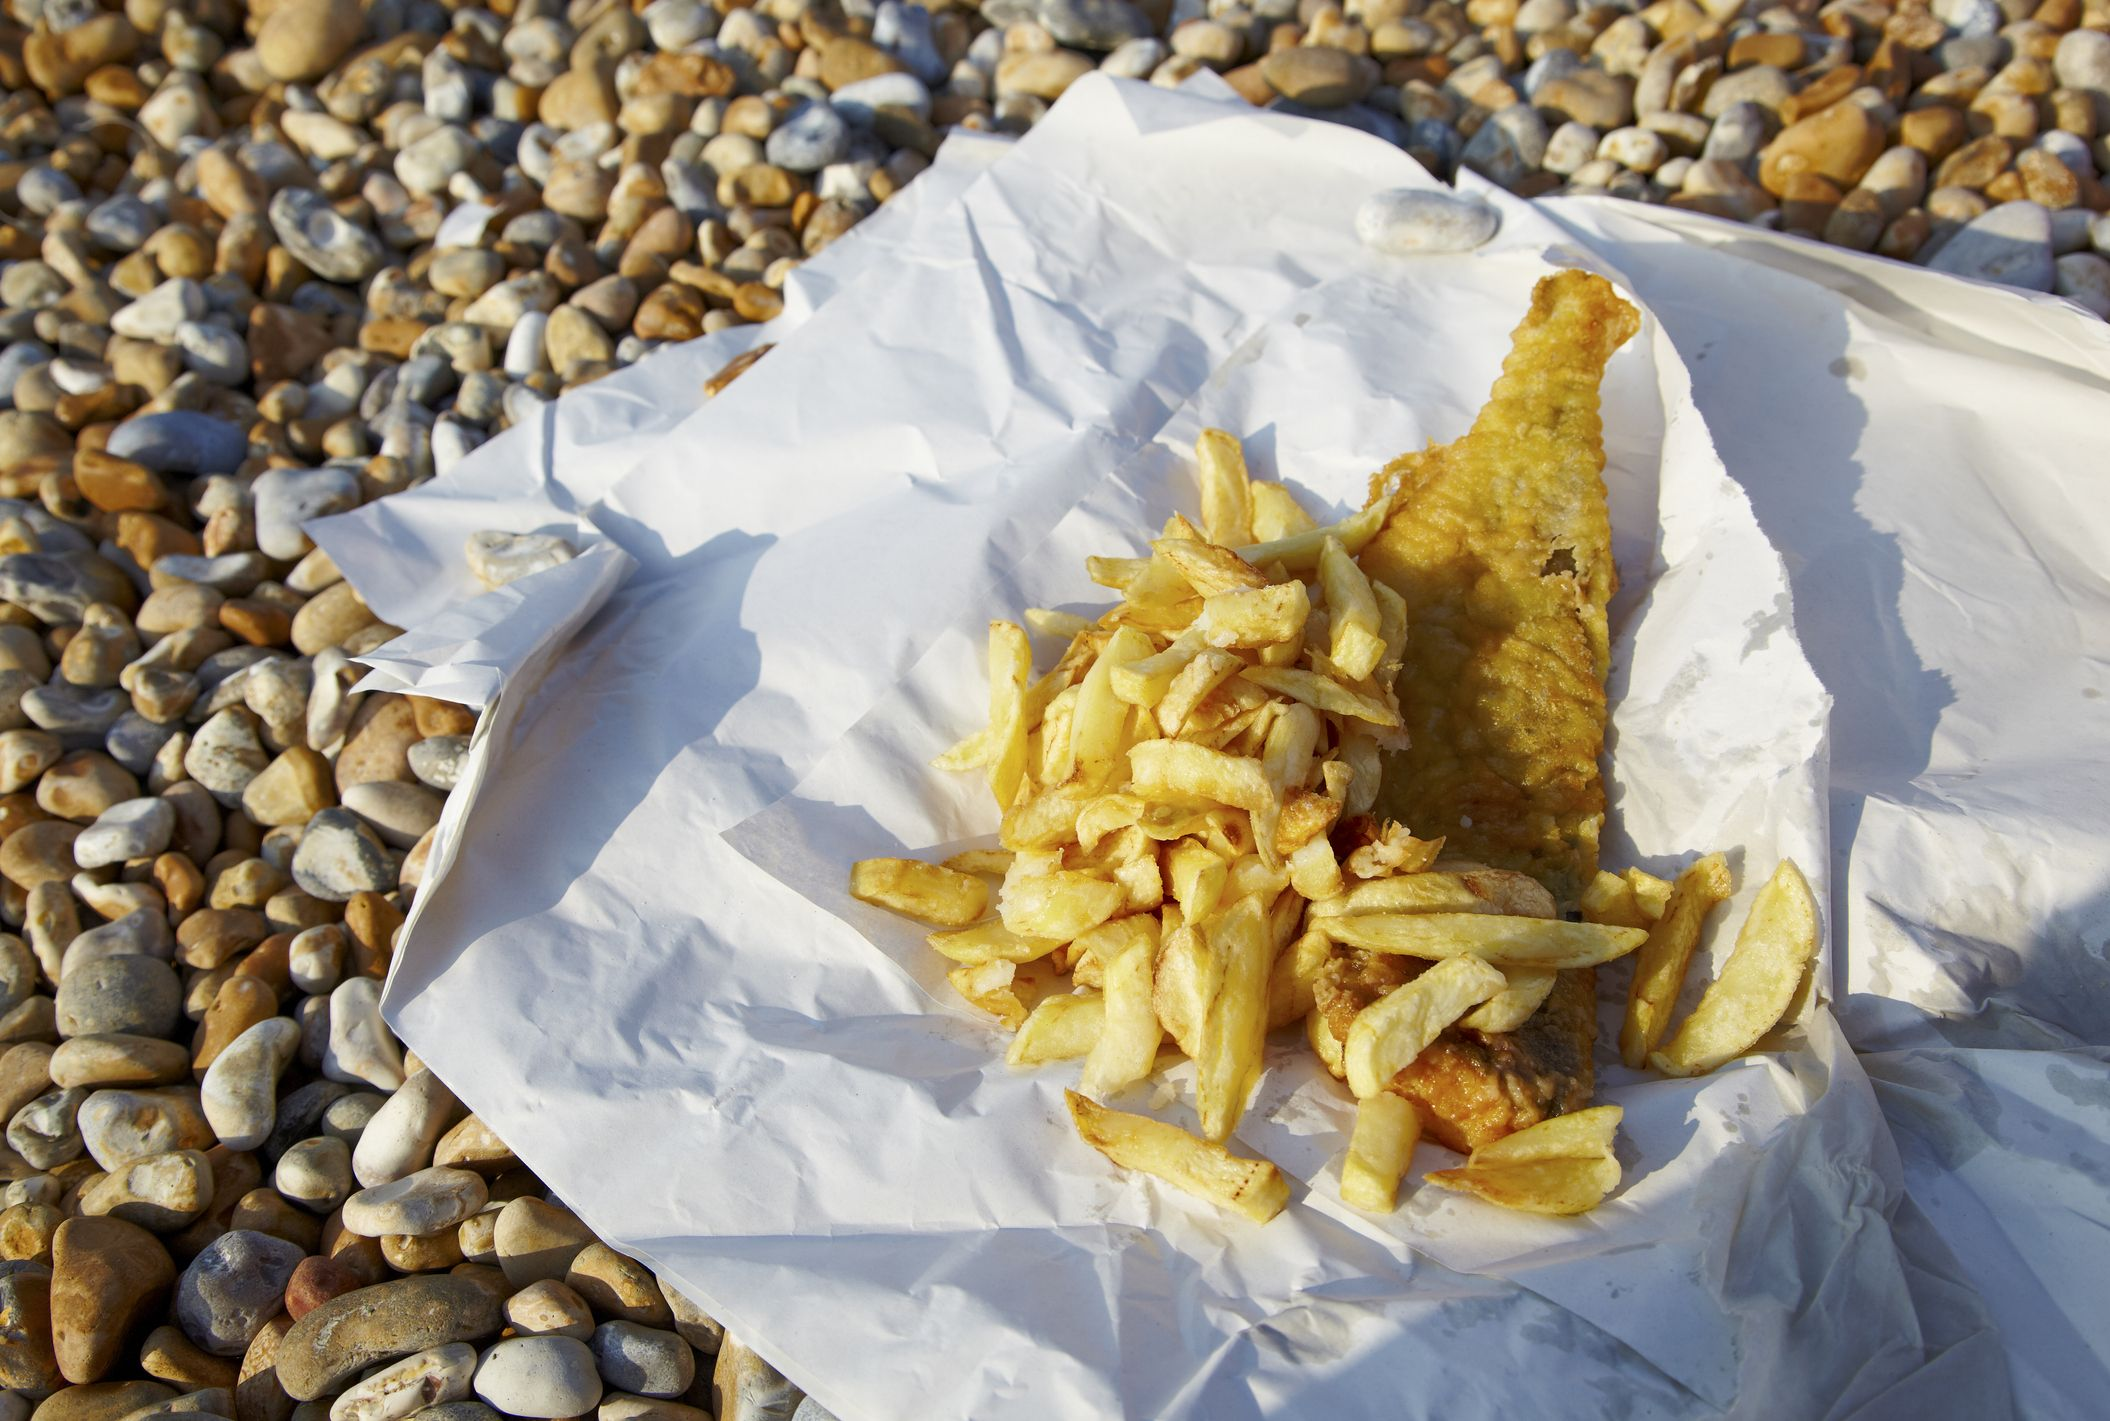 The Best Fish And Chips In The UK Has Been Announced - And It's In Nottingham